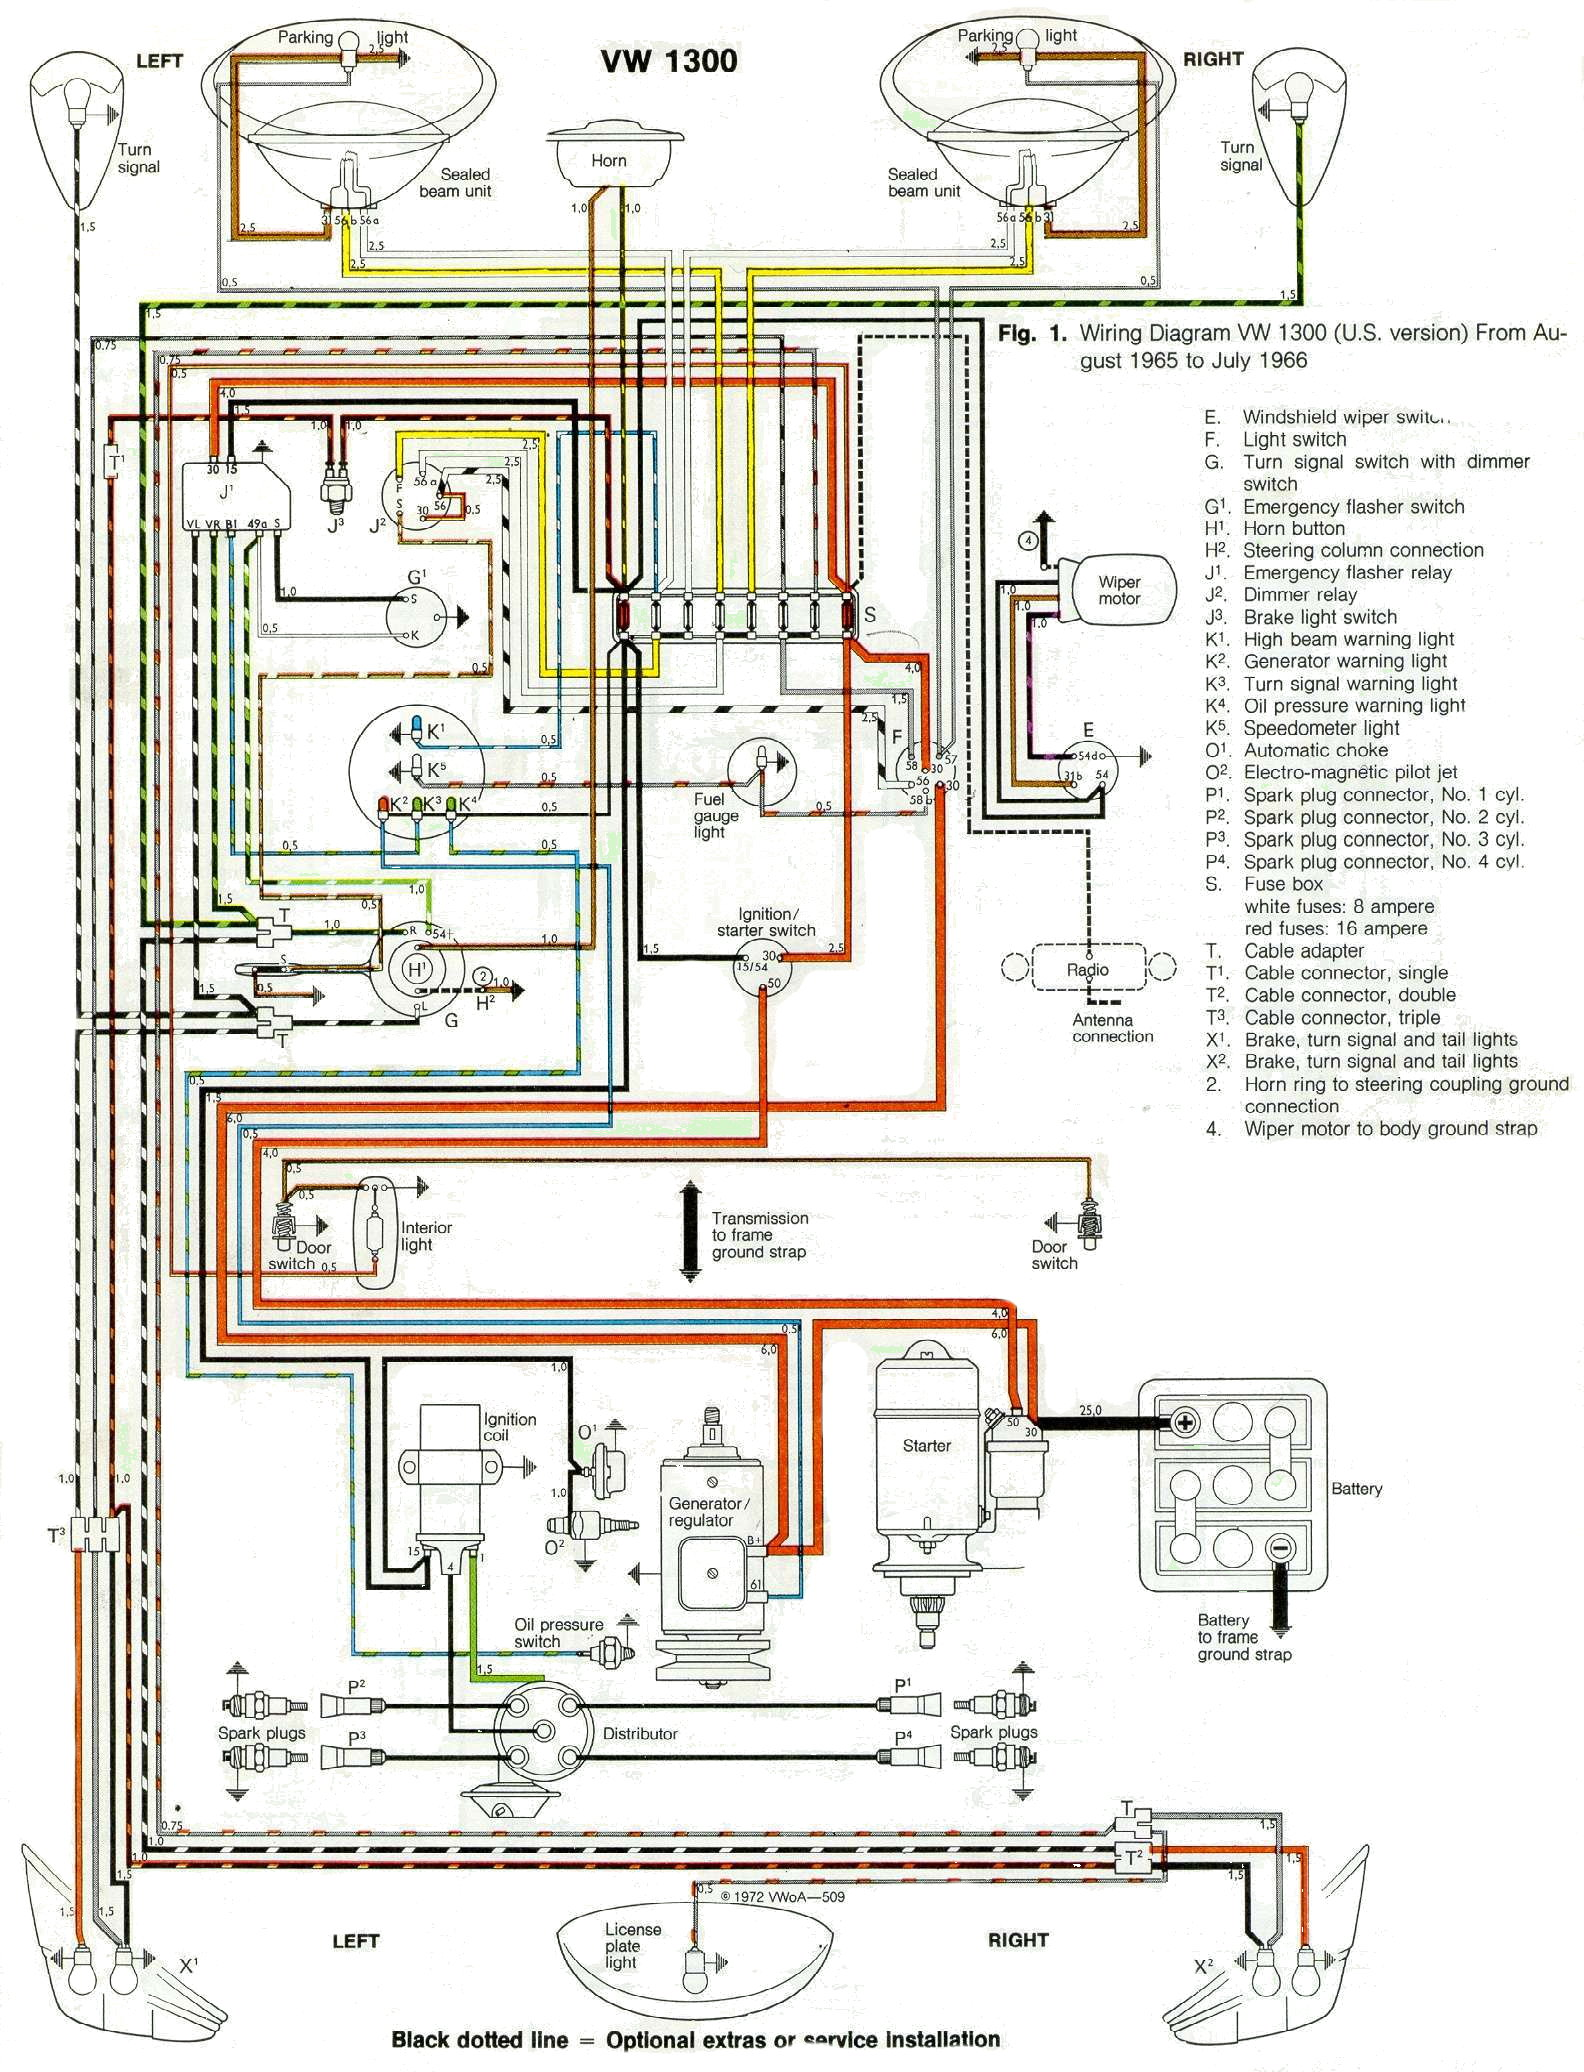 1966 Wiring 1966 wiring diagram 1965 vw beetle wiring diagram at mifinder.co